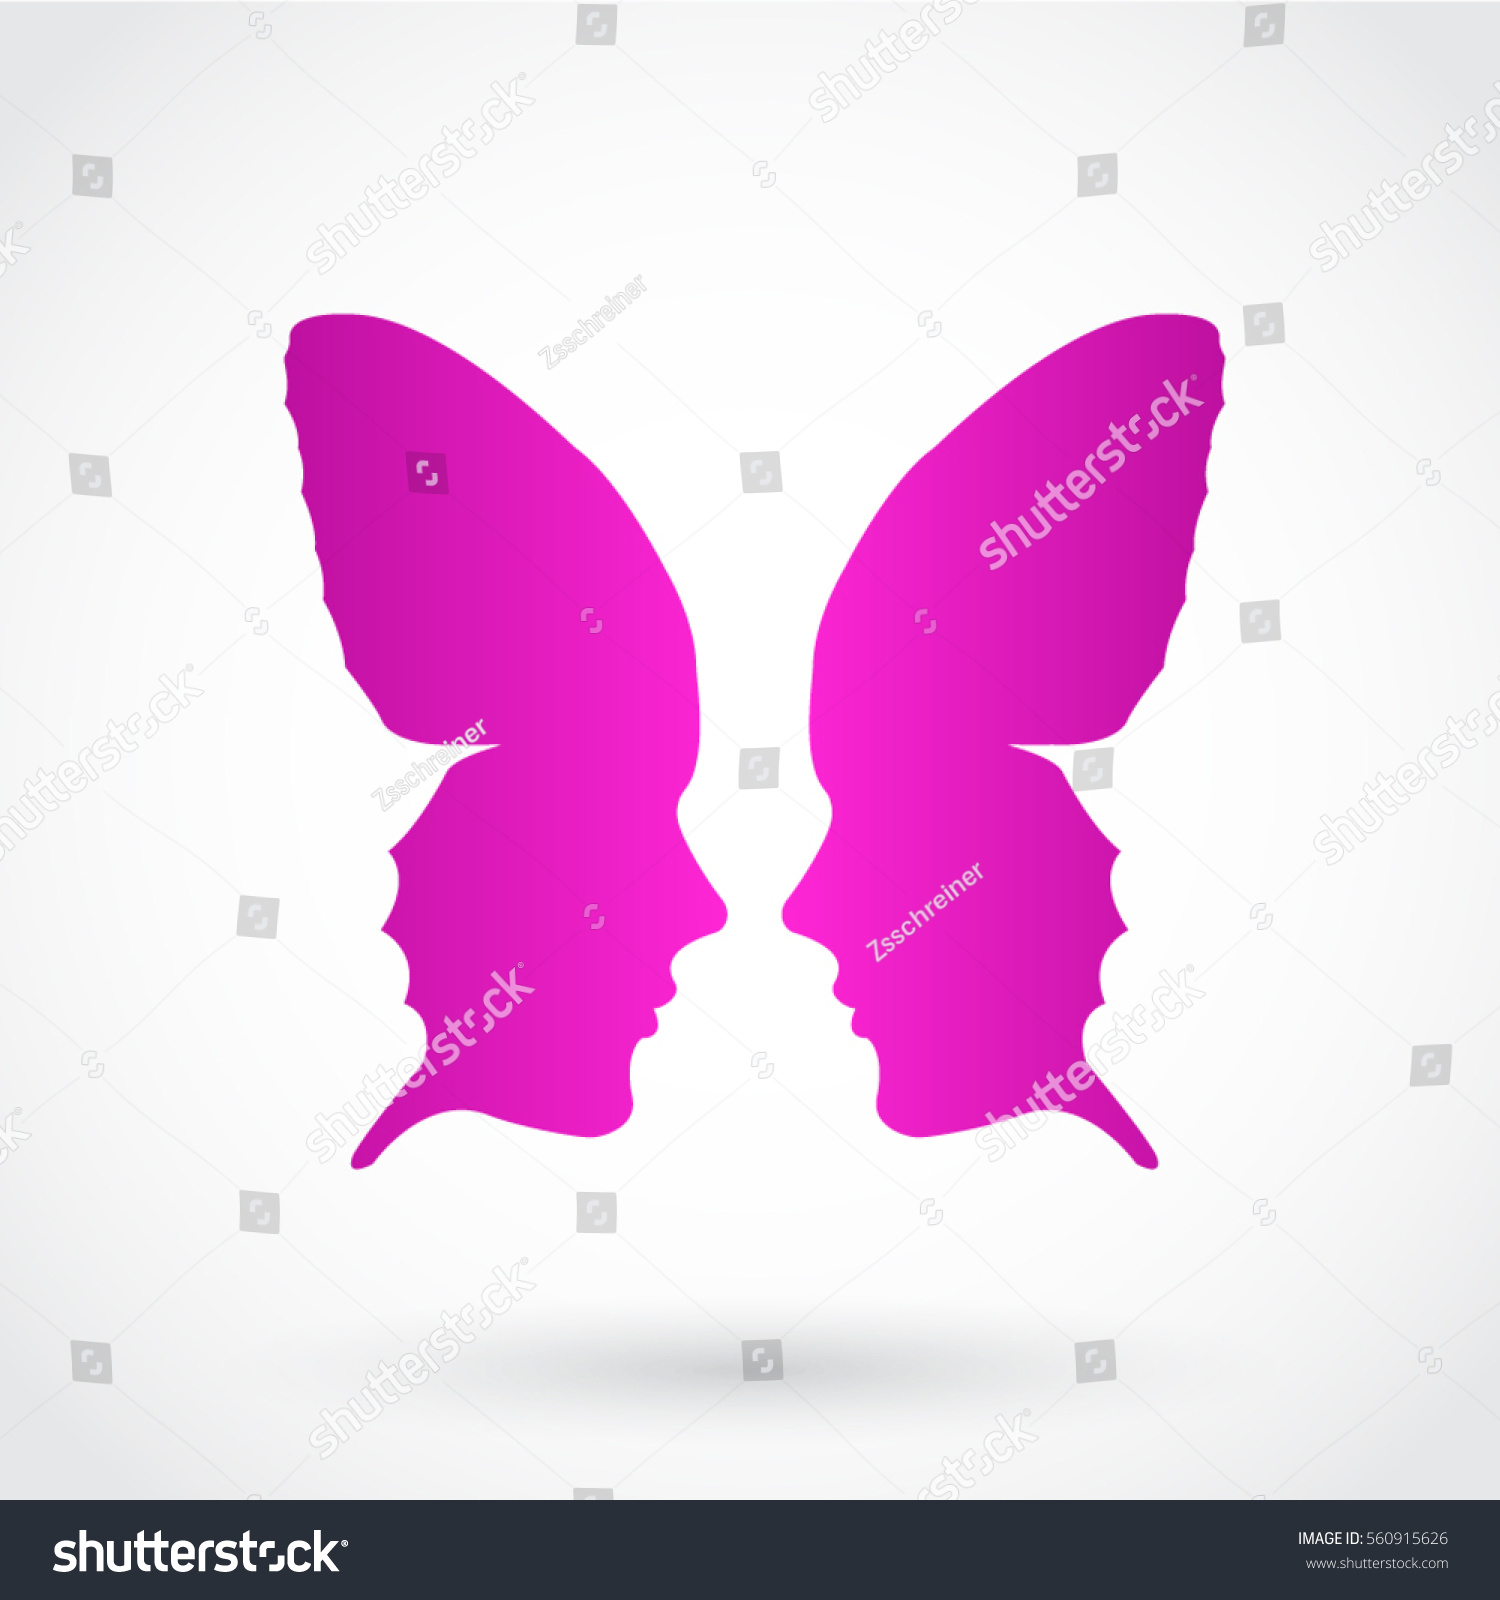 Stylized butterfly face pink purple symbol stock vector 560915626 stylized butterfly face pink purple symbol biocorpaavc Images